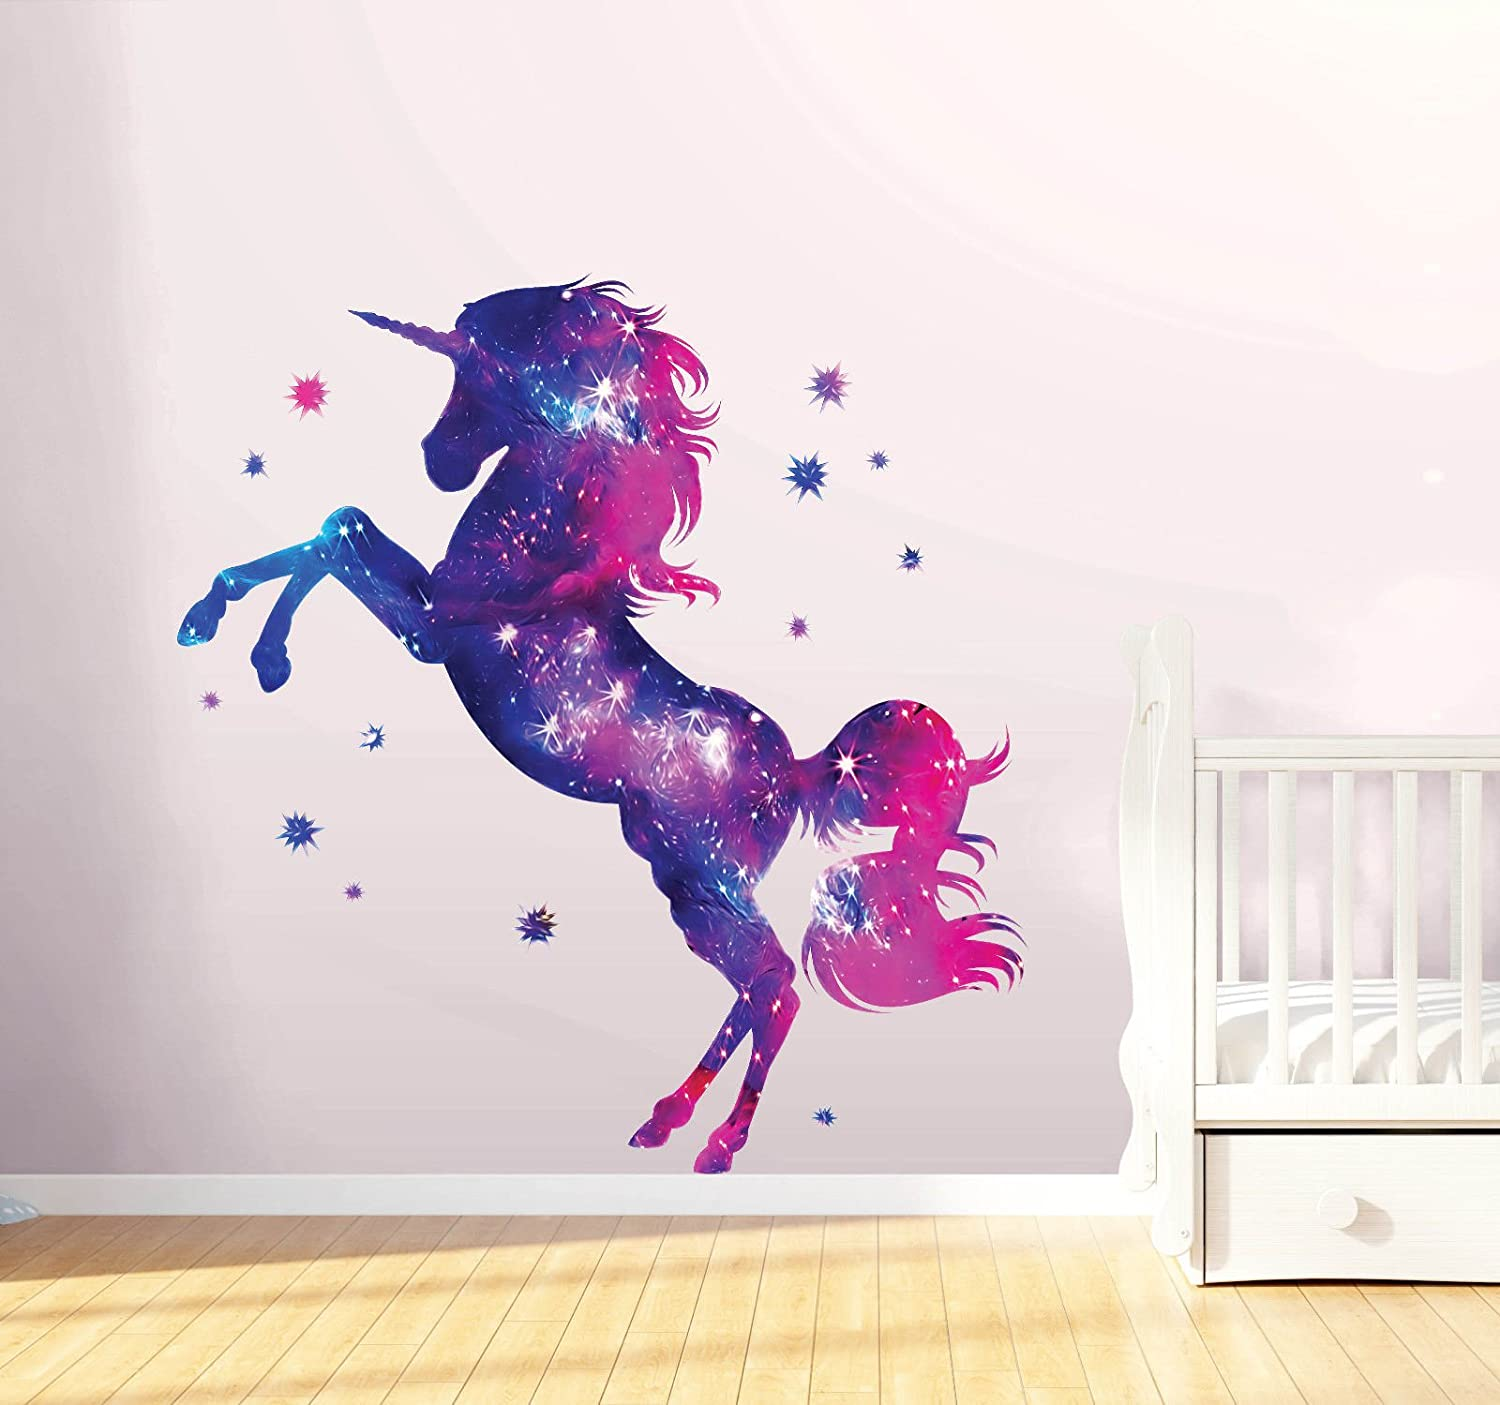 Stars Unicorn Wall Sticker Fantasy Girls Bedroom Wall Art Cute Nursary Decal Boultons Graphics